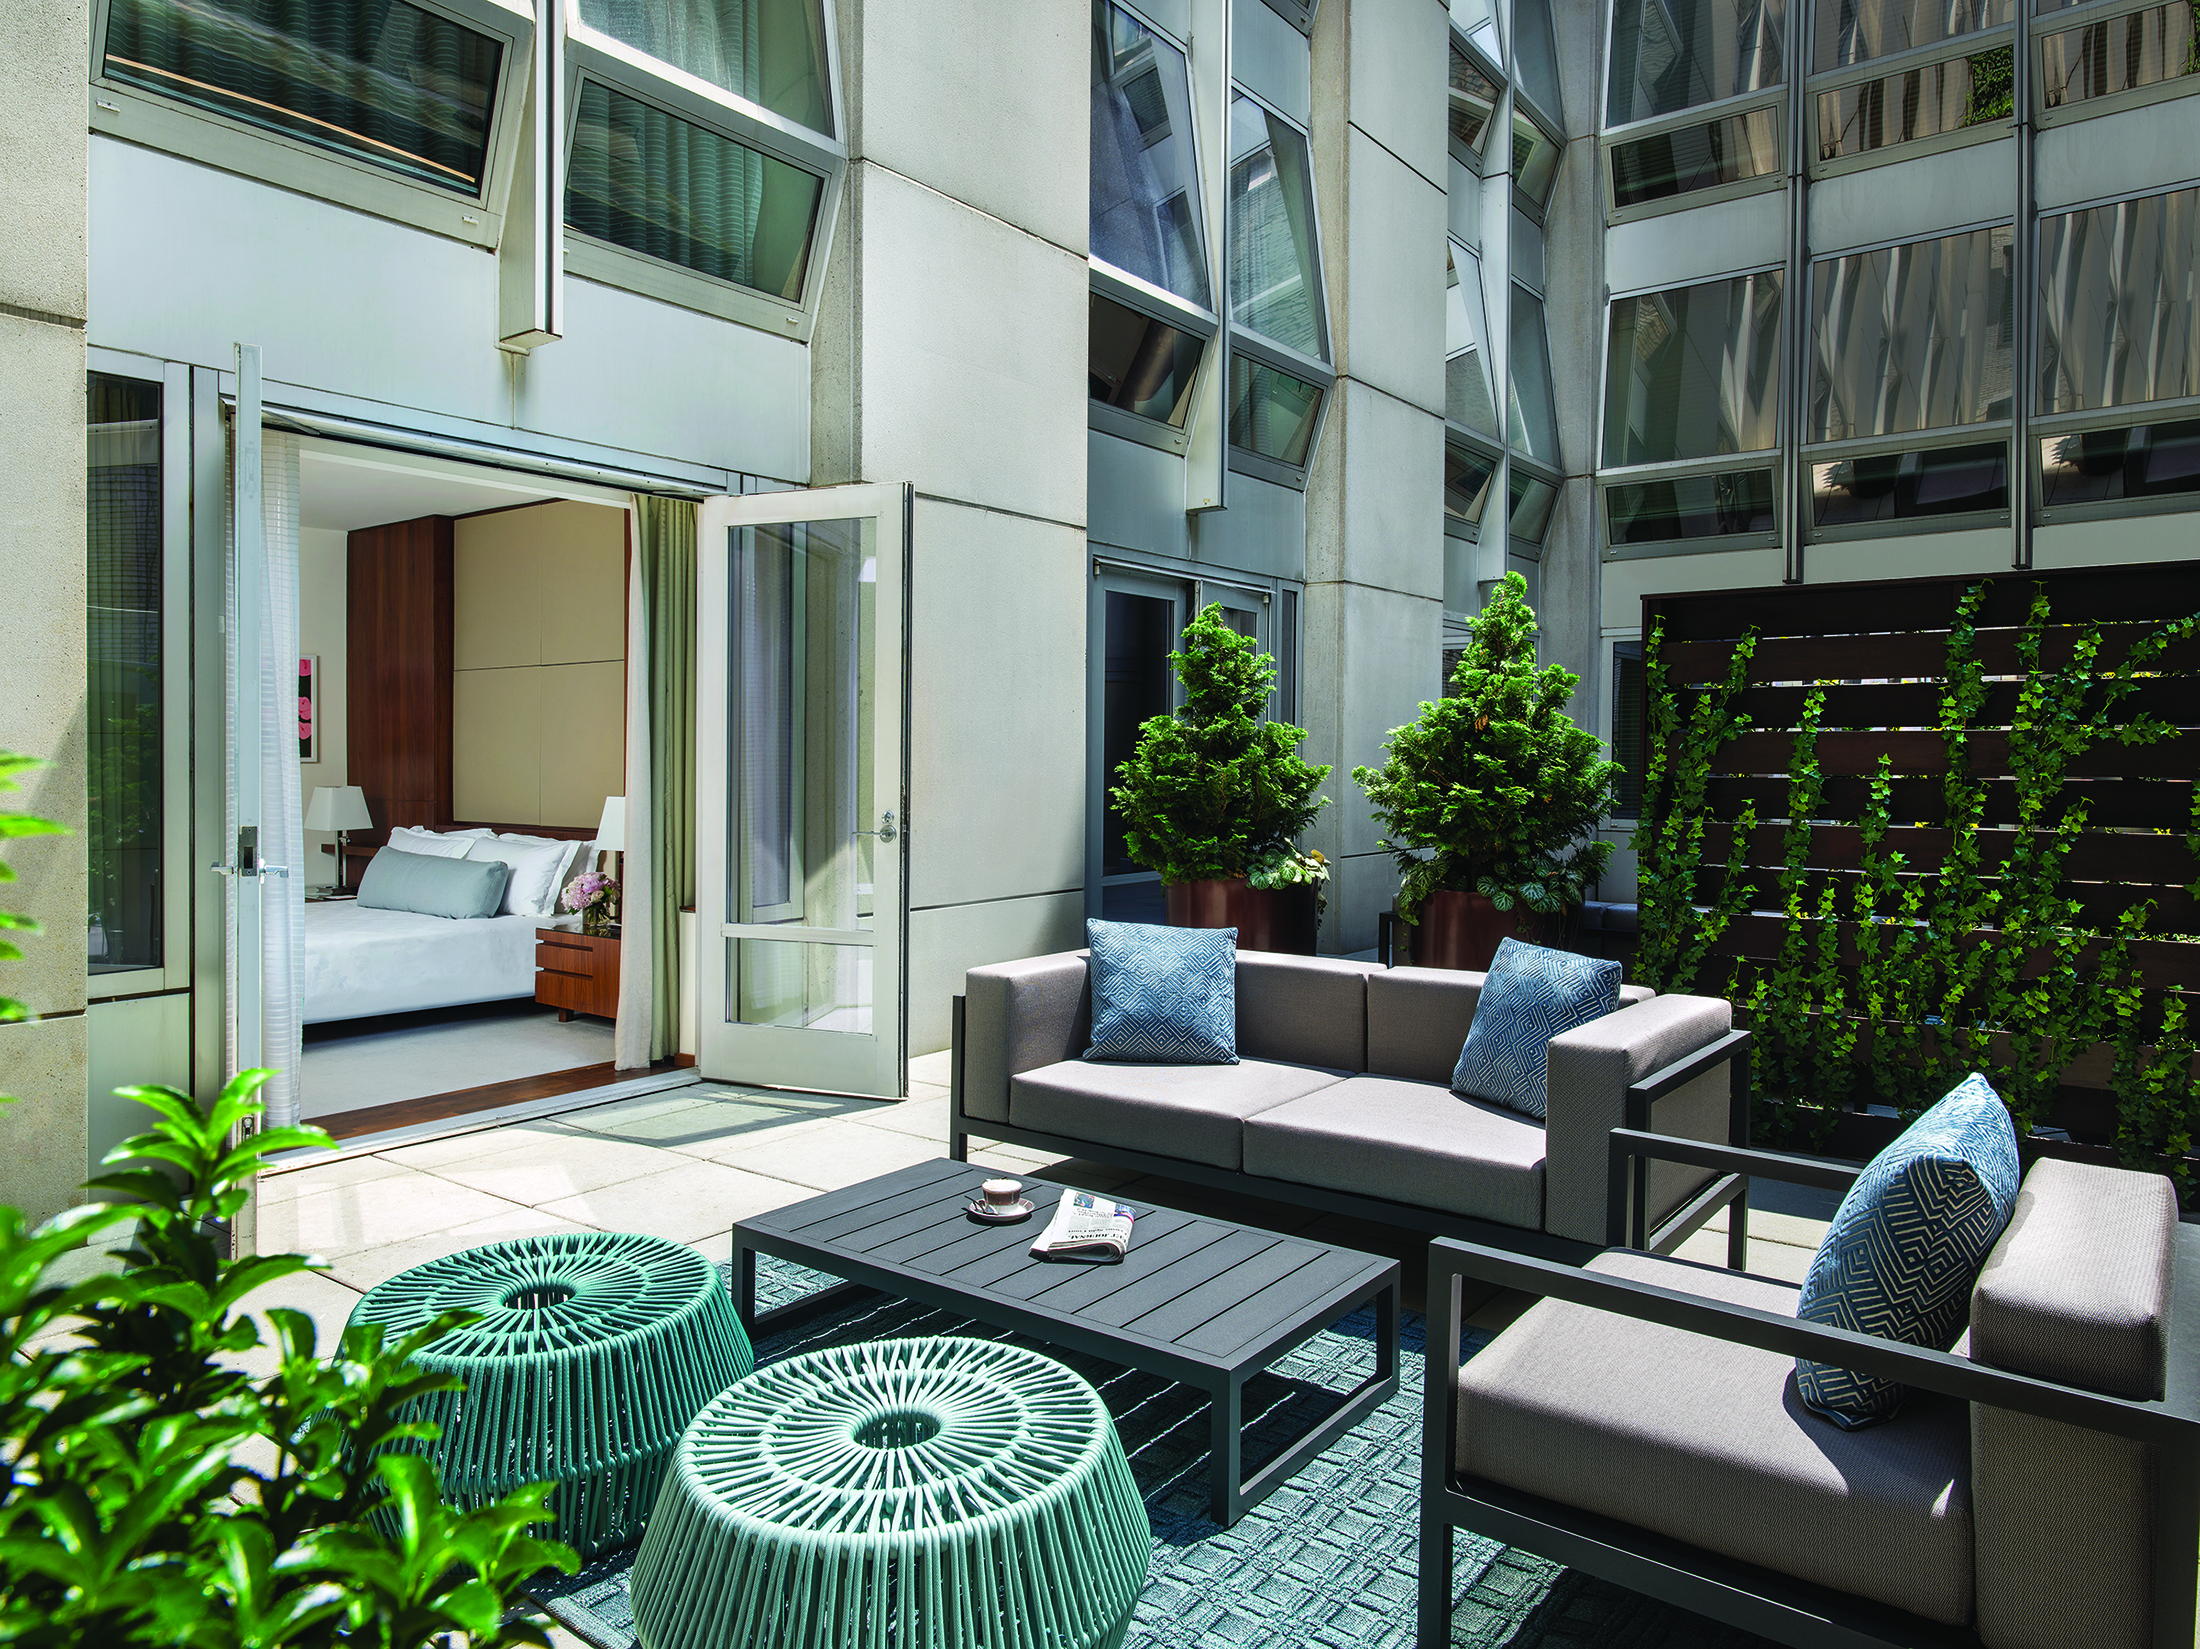 The fifth-floor terraces are walled-in private enclaves with teal furnishings.